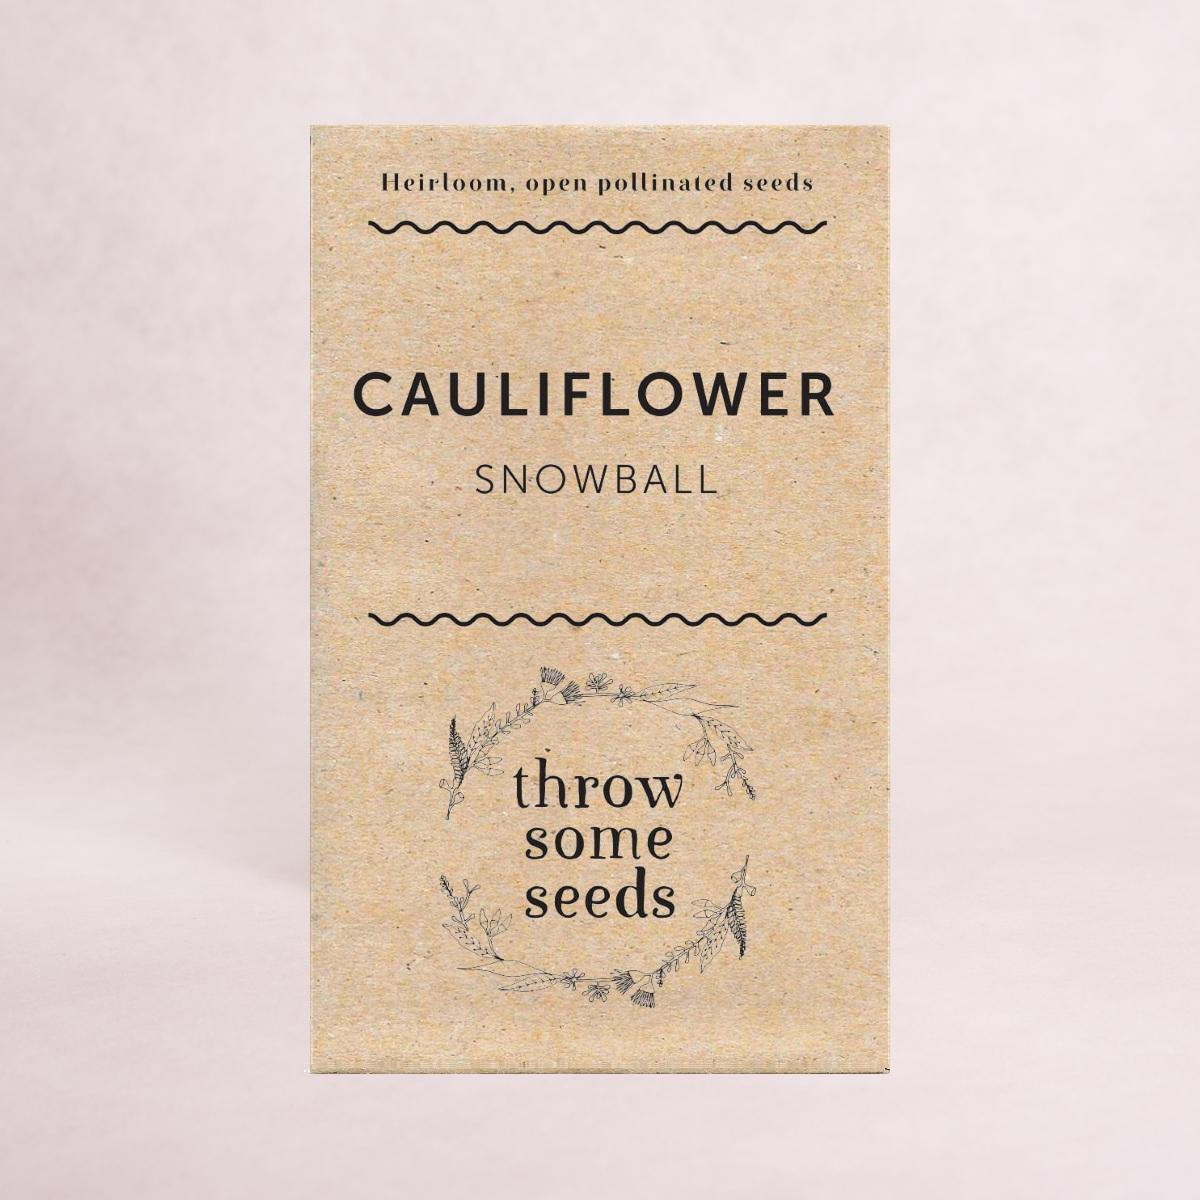 Cauliflower (Snowball) Seeds - Seeds - Throw Some Seeds - Australian gardening gifts and eco products online!